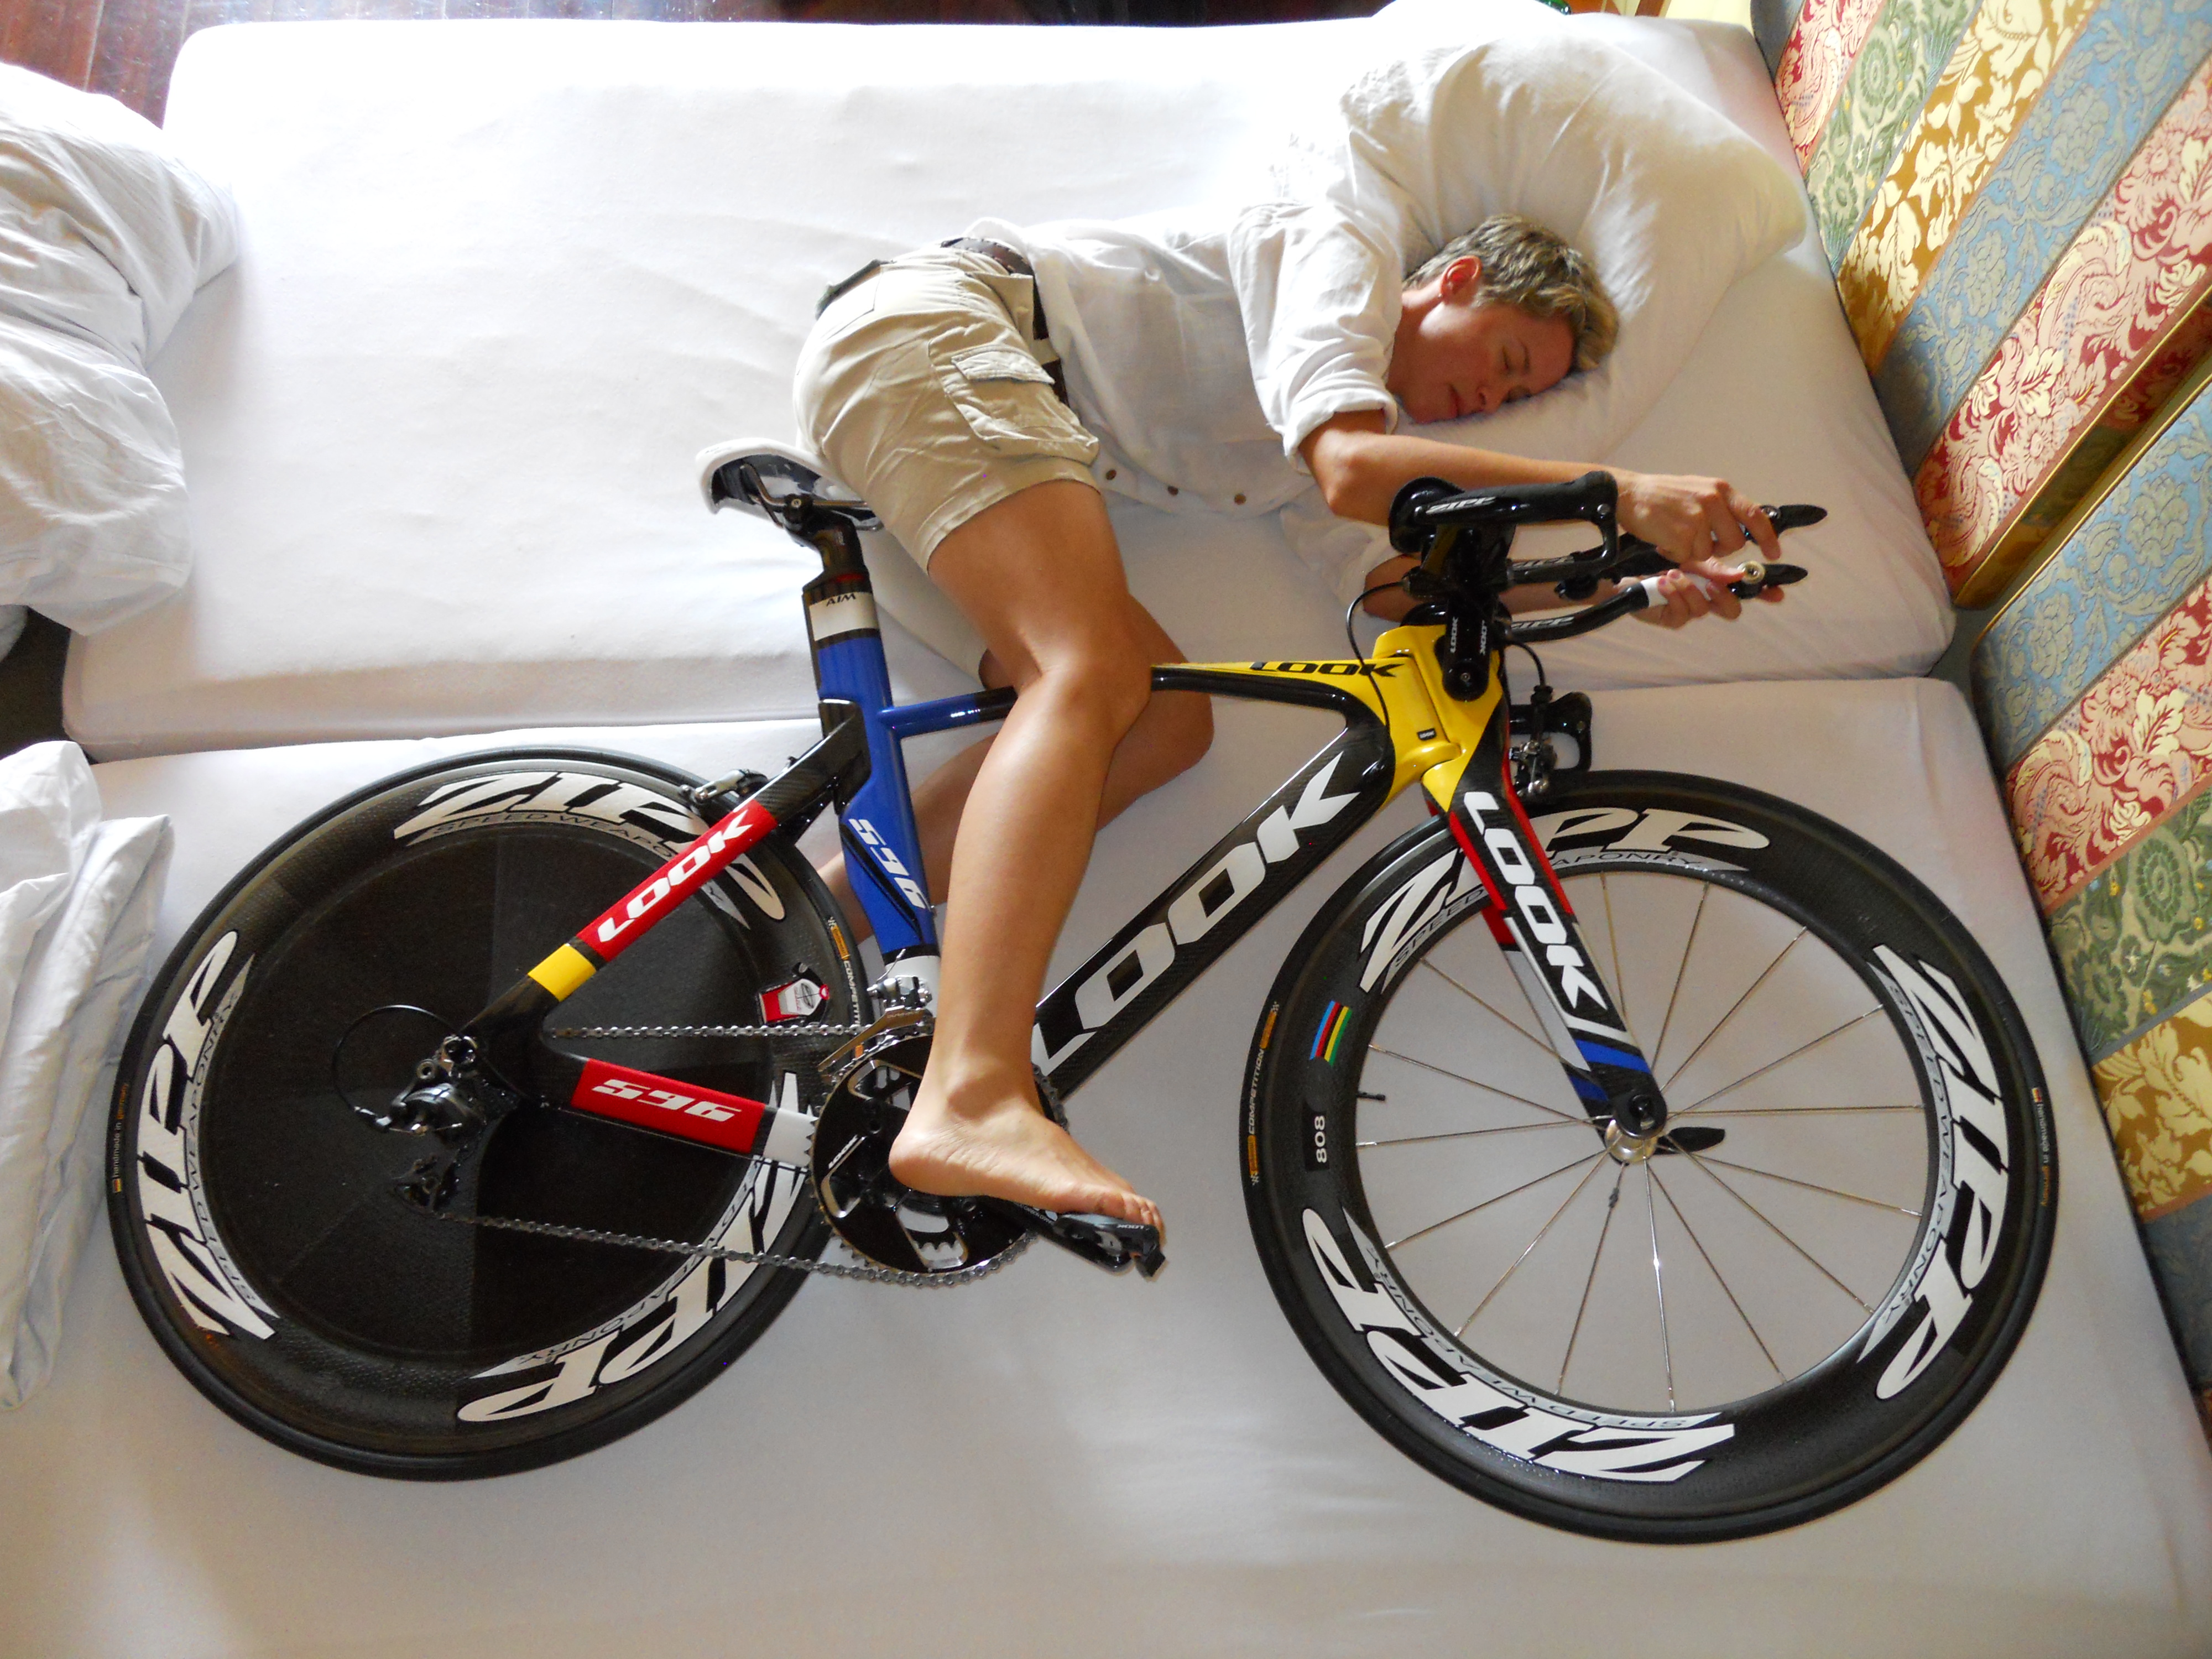 Cyclist Sleeping with Bike